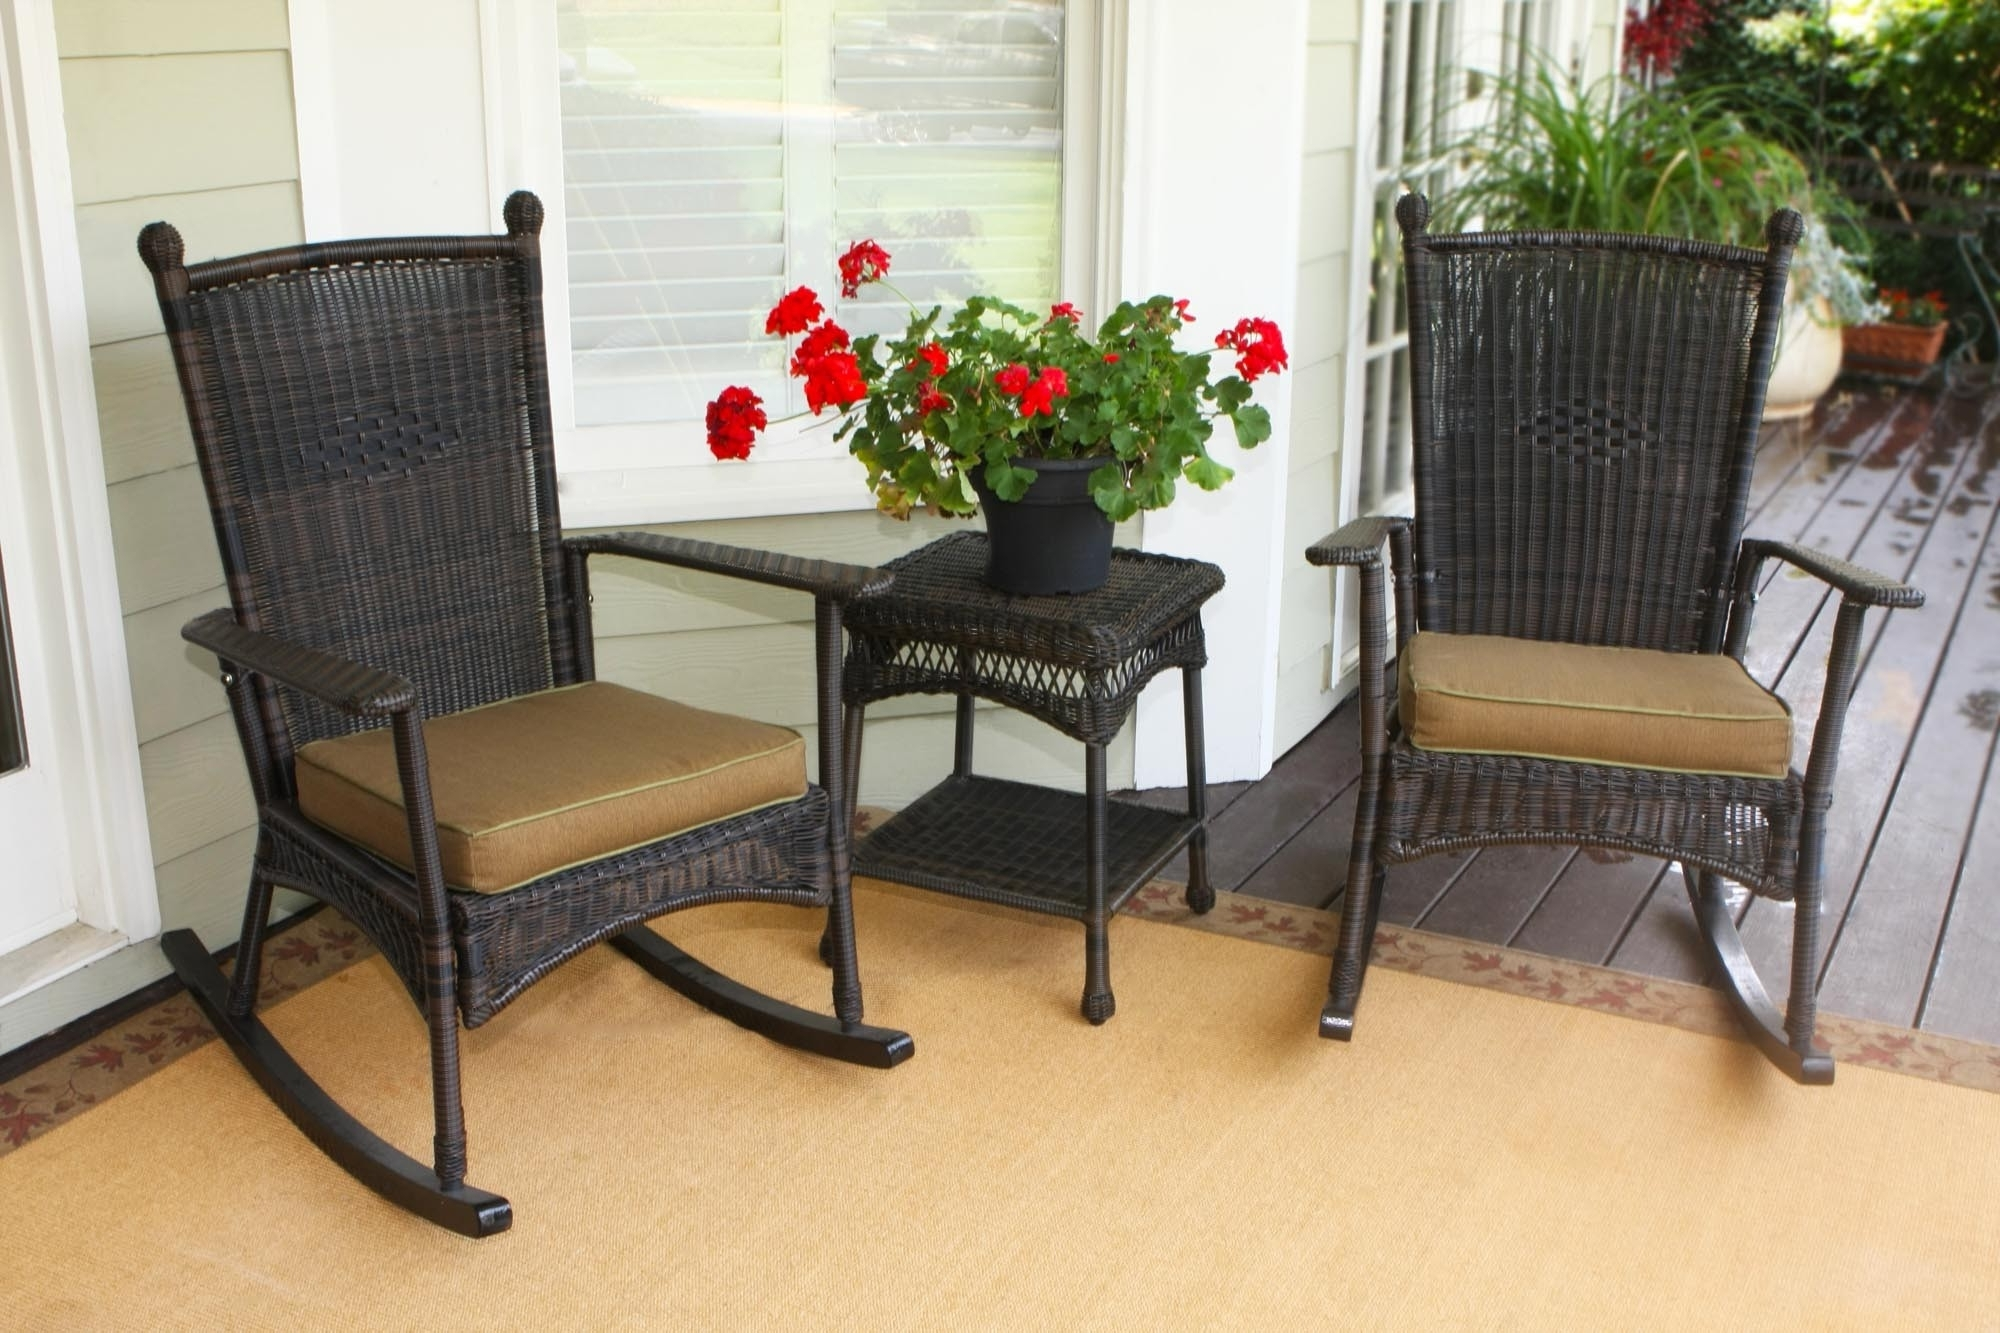 Wicker Rocking Chairs With Cushions Inside Current Portside Classic Wicker Rocking Chair Set – The Rocking Chair Company (View 15 of 20)